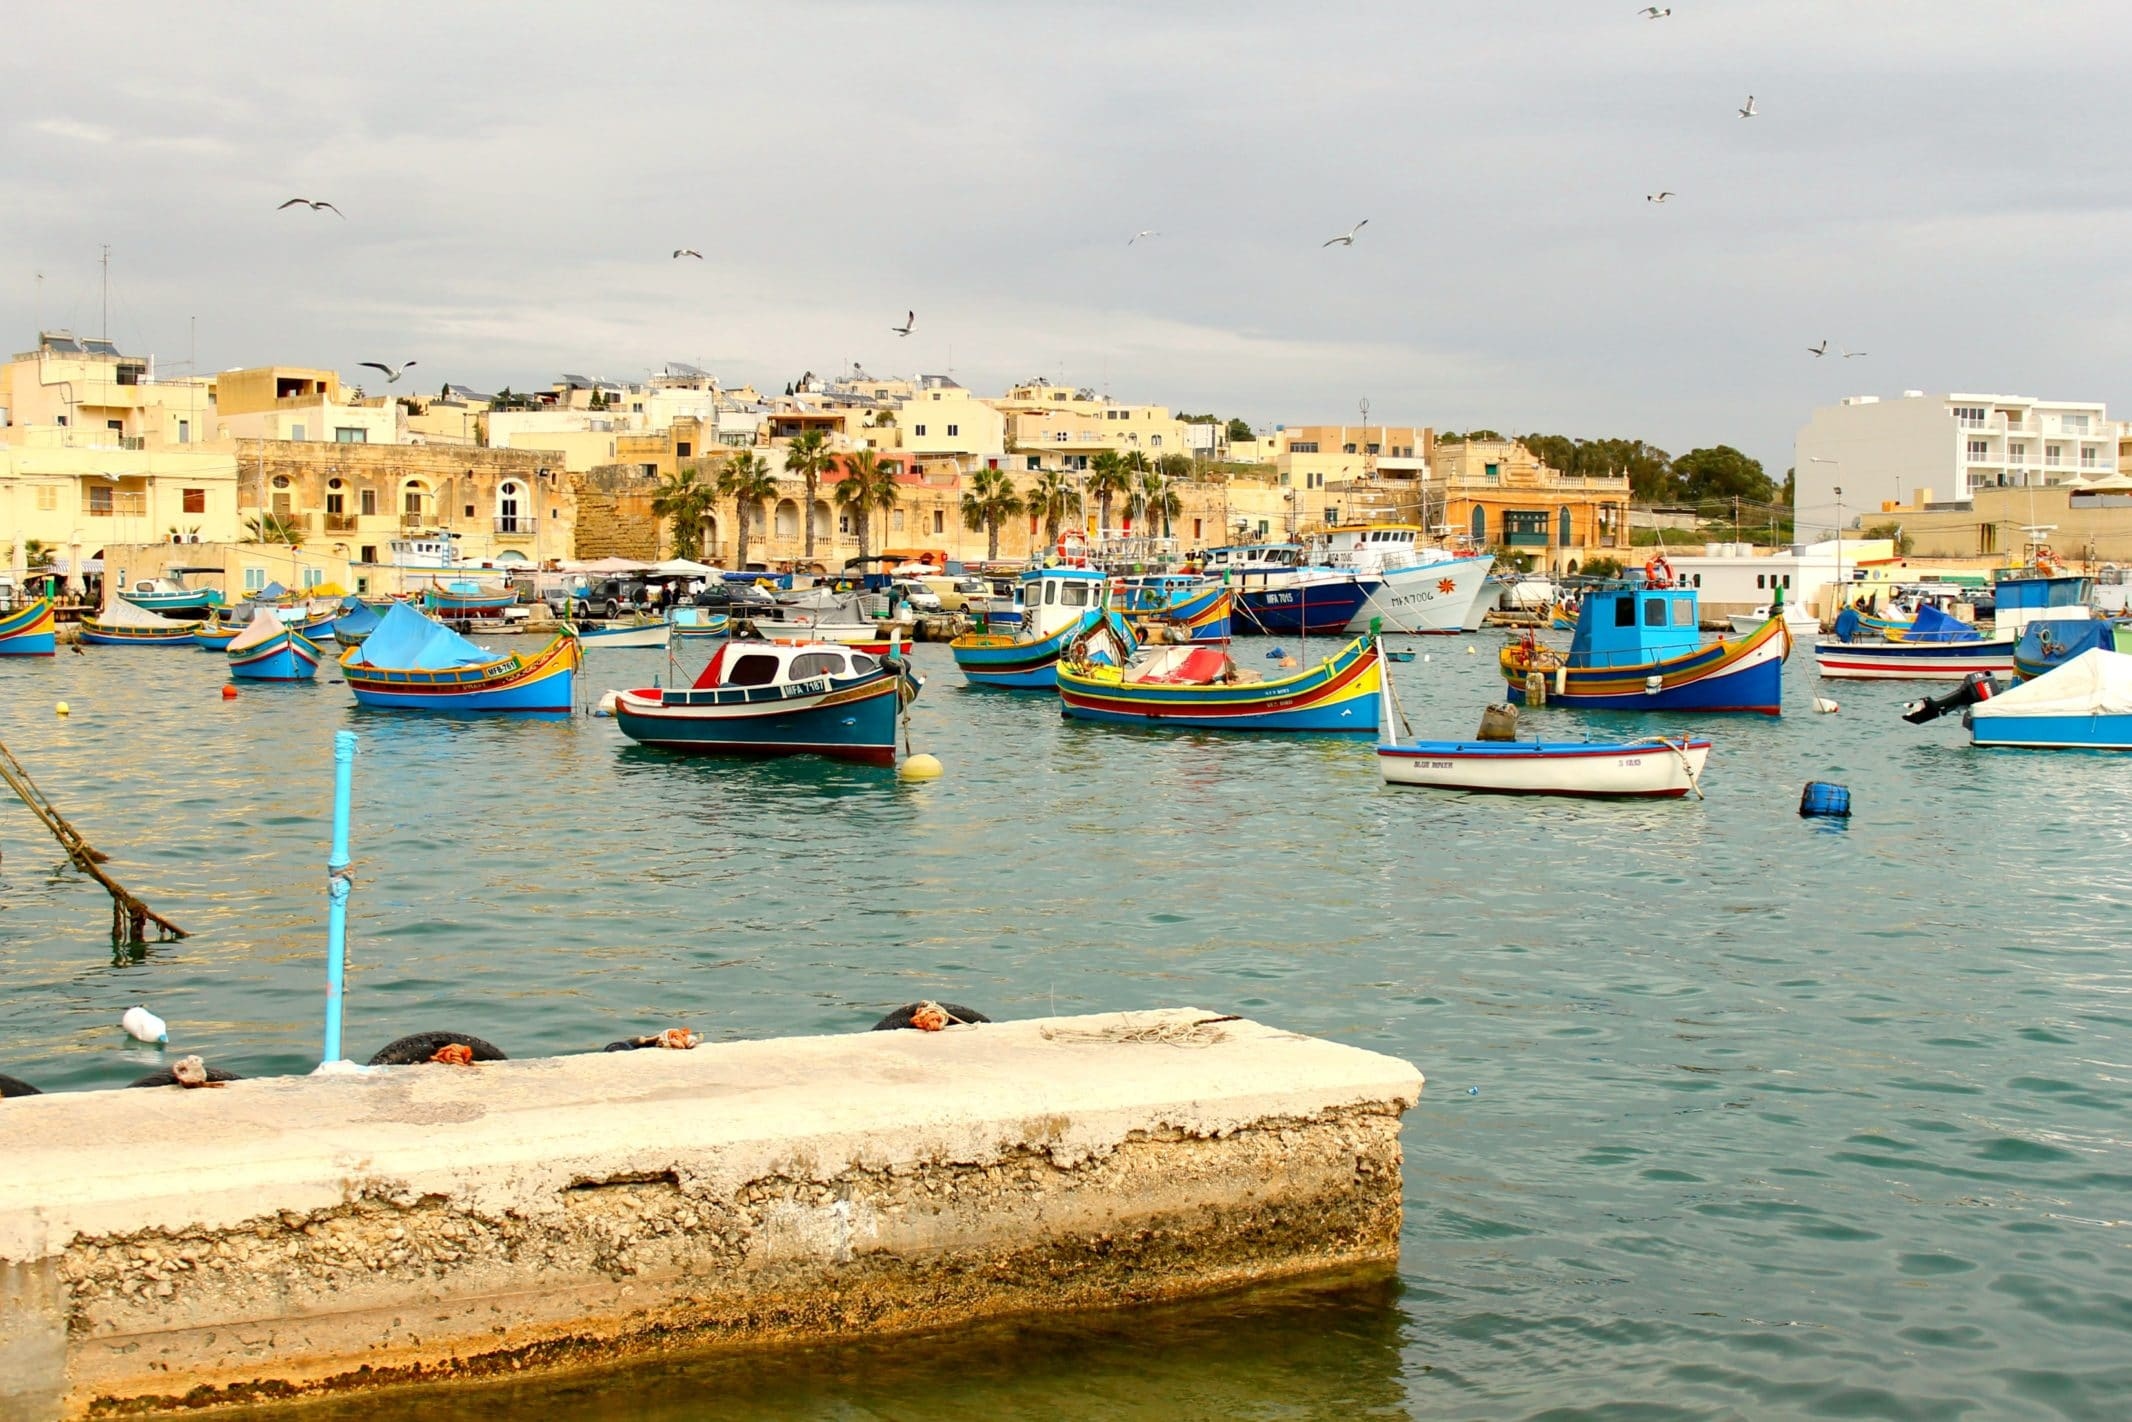 Corinthia Palace's central location means beautiful fishing villages like Marsaxlokk are only a 20 minute drive away.